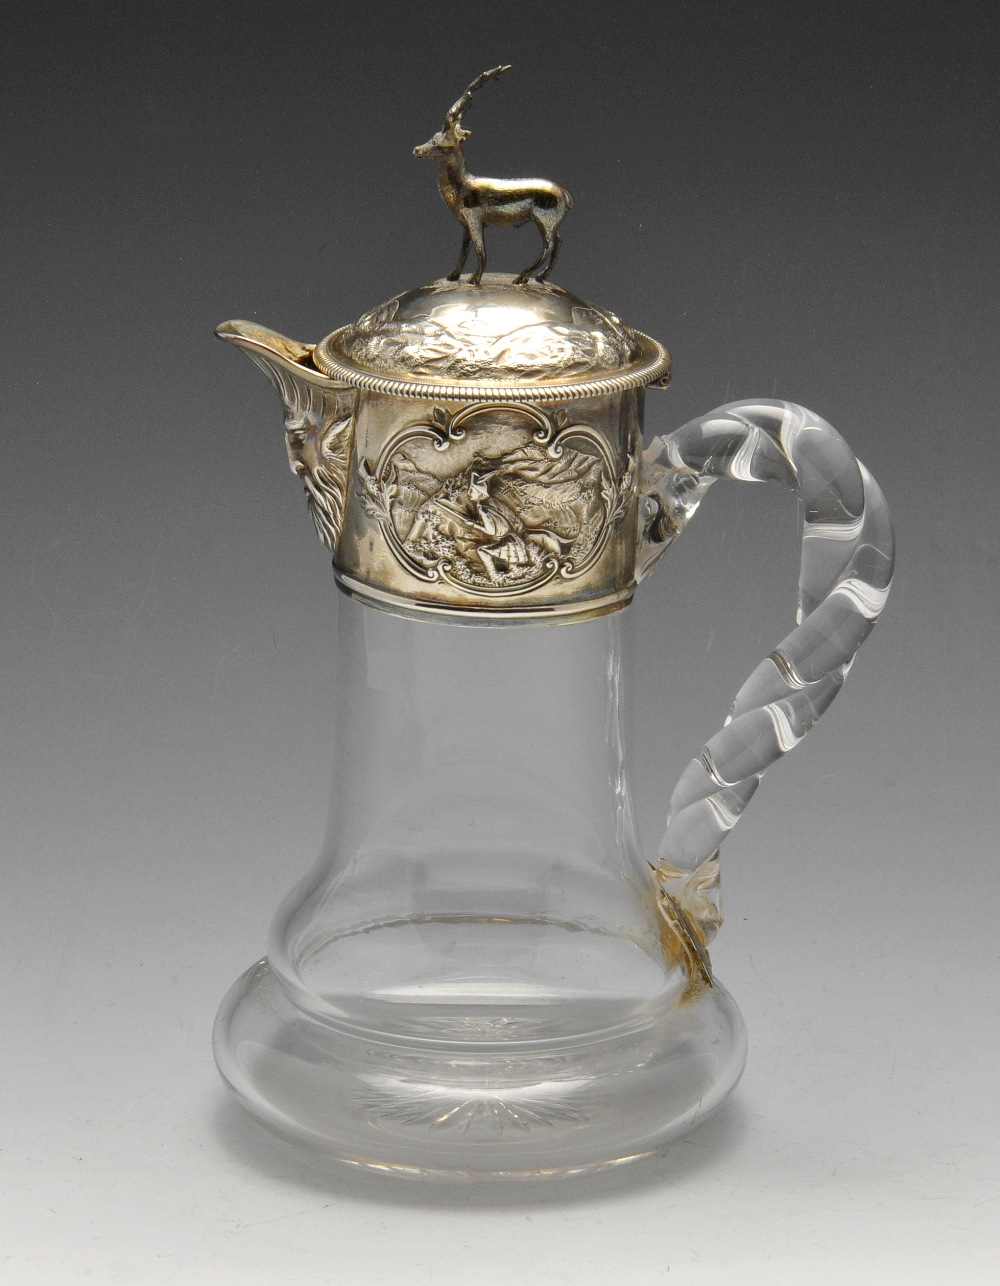 Lot 110 - A Victorian silver mounted glass claret jug, of cylindrical form with a bulbous base and rope